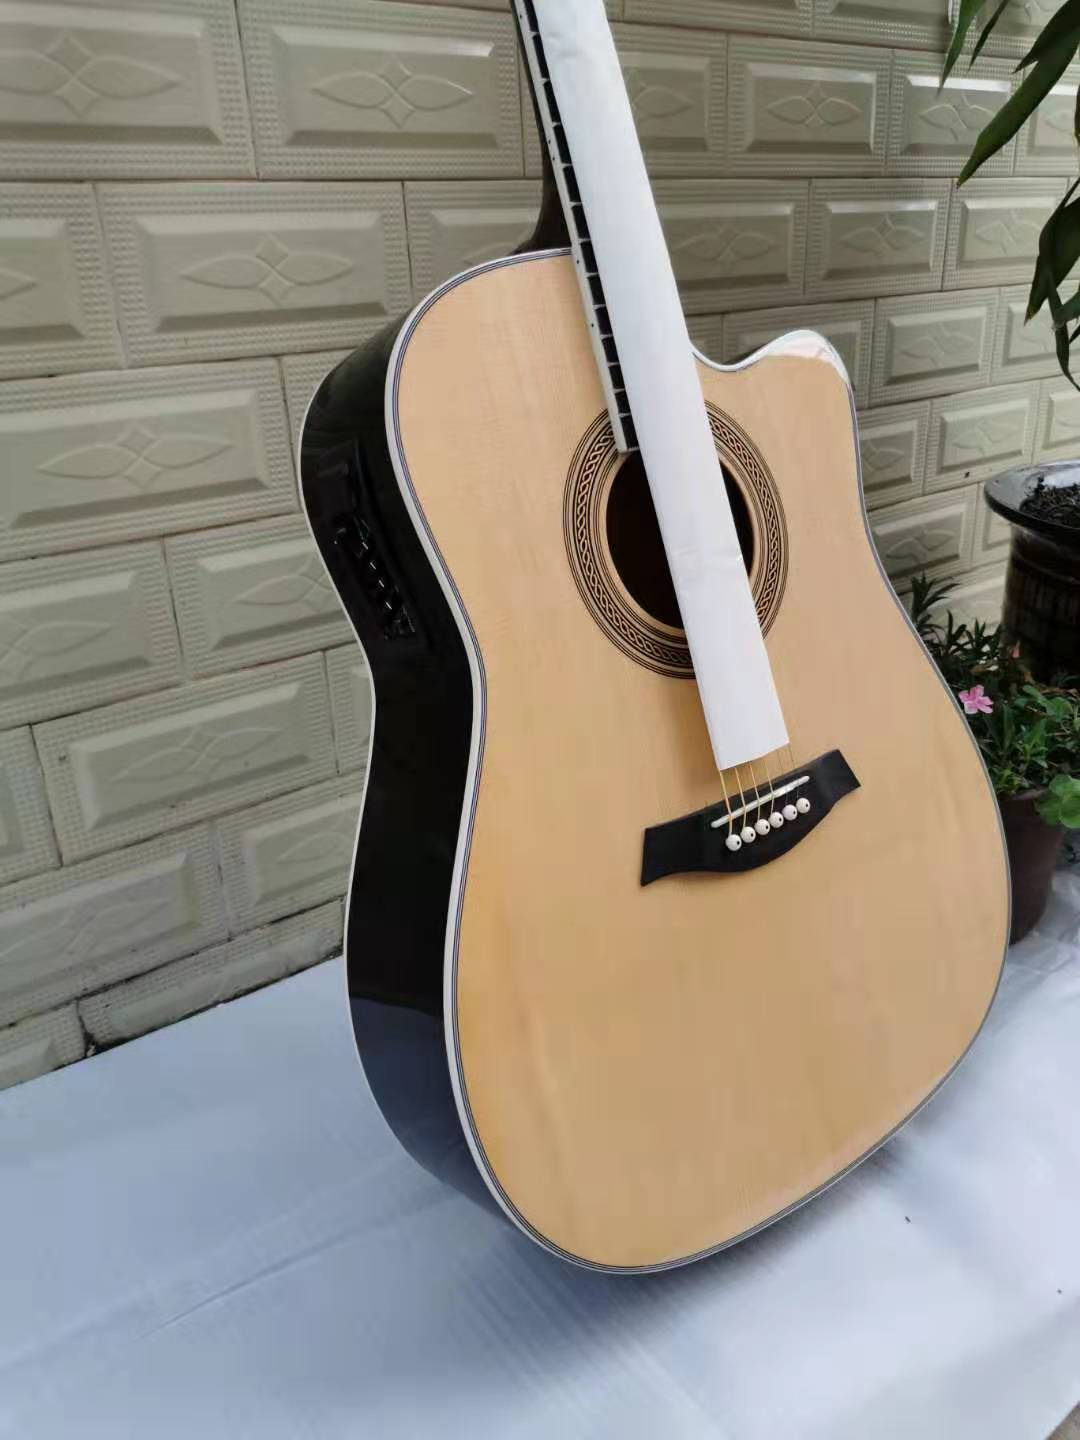 Aesthetic Gifts Electric Guitar Wood Bridge Hollow Body Electric Guitar High Quality Chitarra Elettrica Instruments DL6DJT enlarge